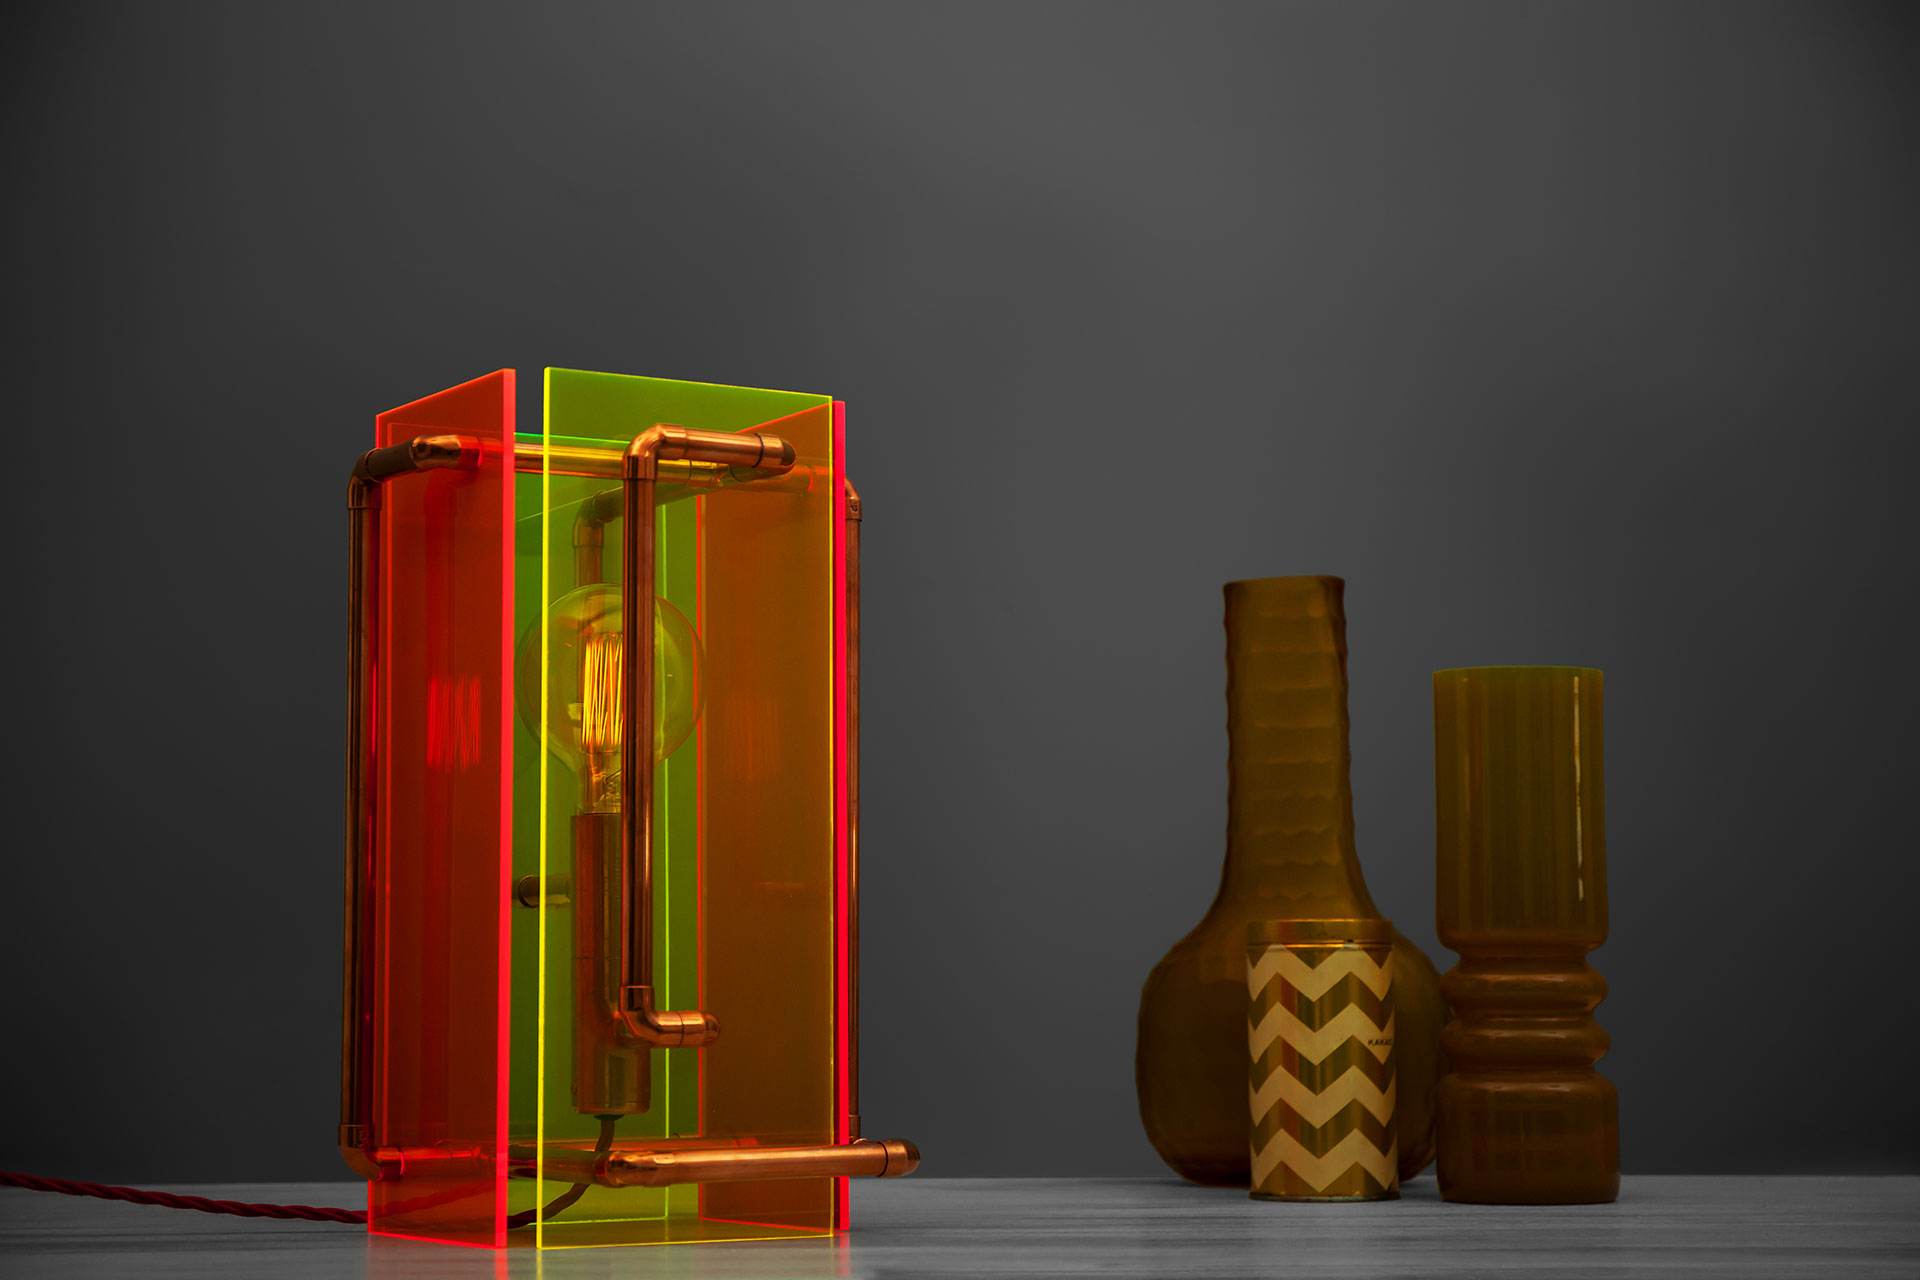 Sculpture table lamp inspired by 80's colorful plastic design and modern industrial style